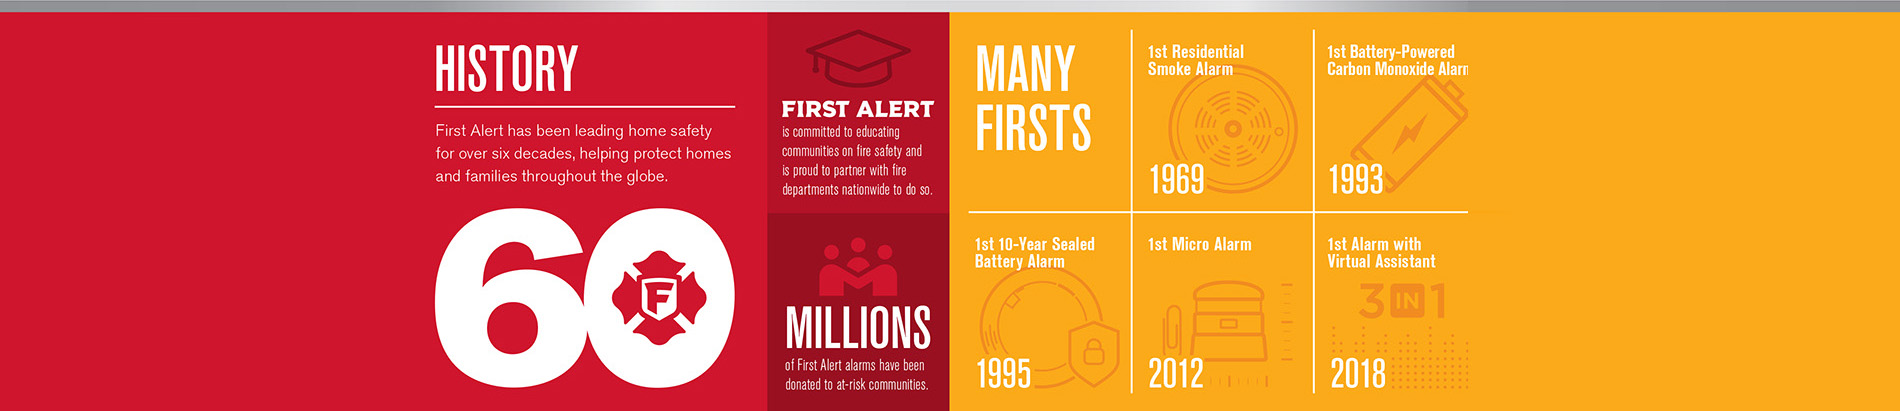 Celebrating 60-year History of First Alert's Leadership in Home Safety